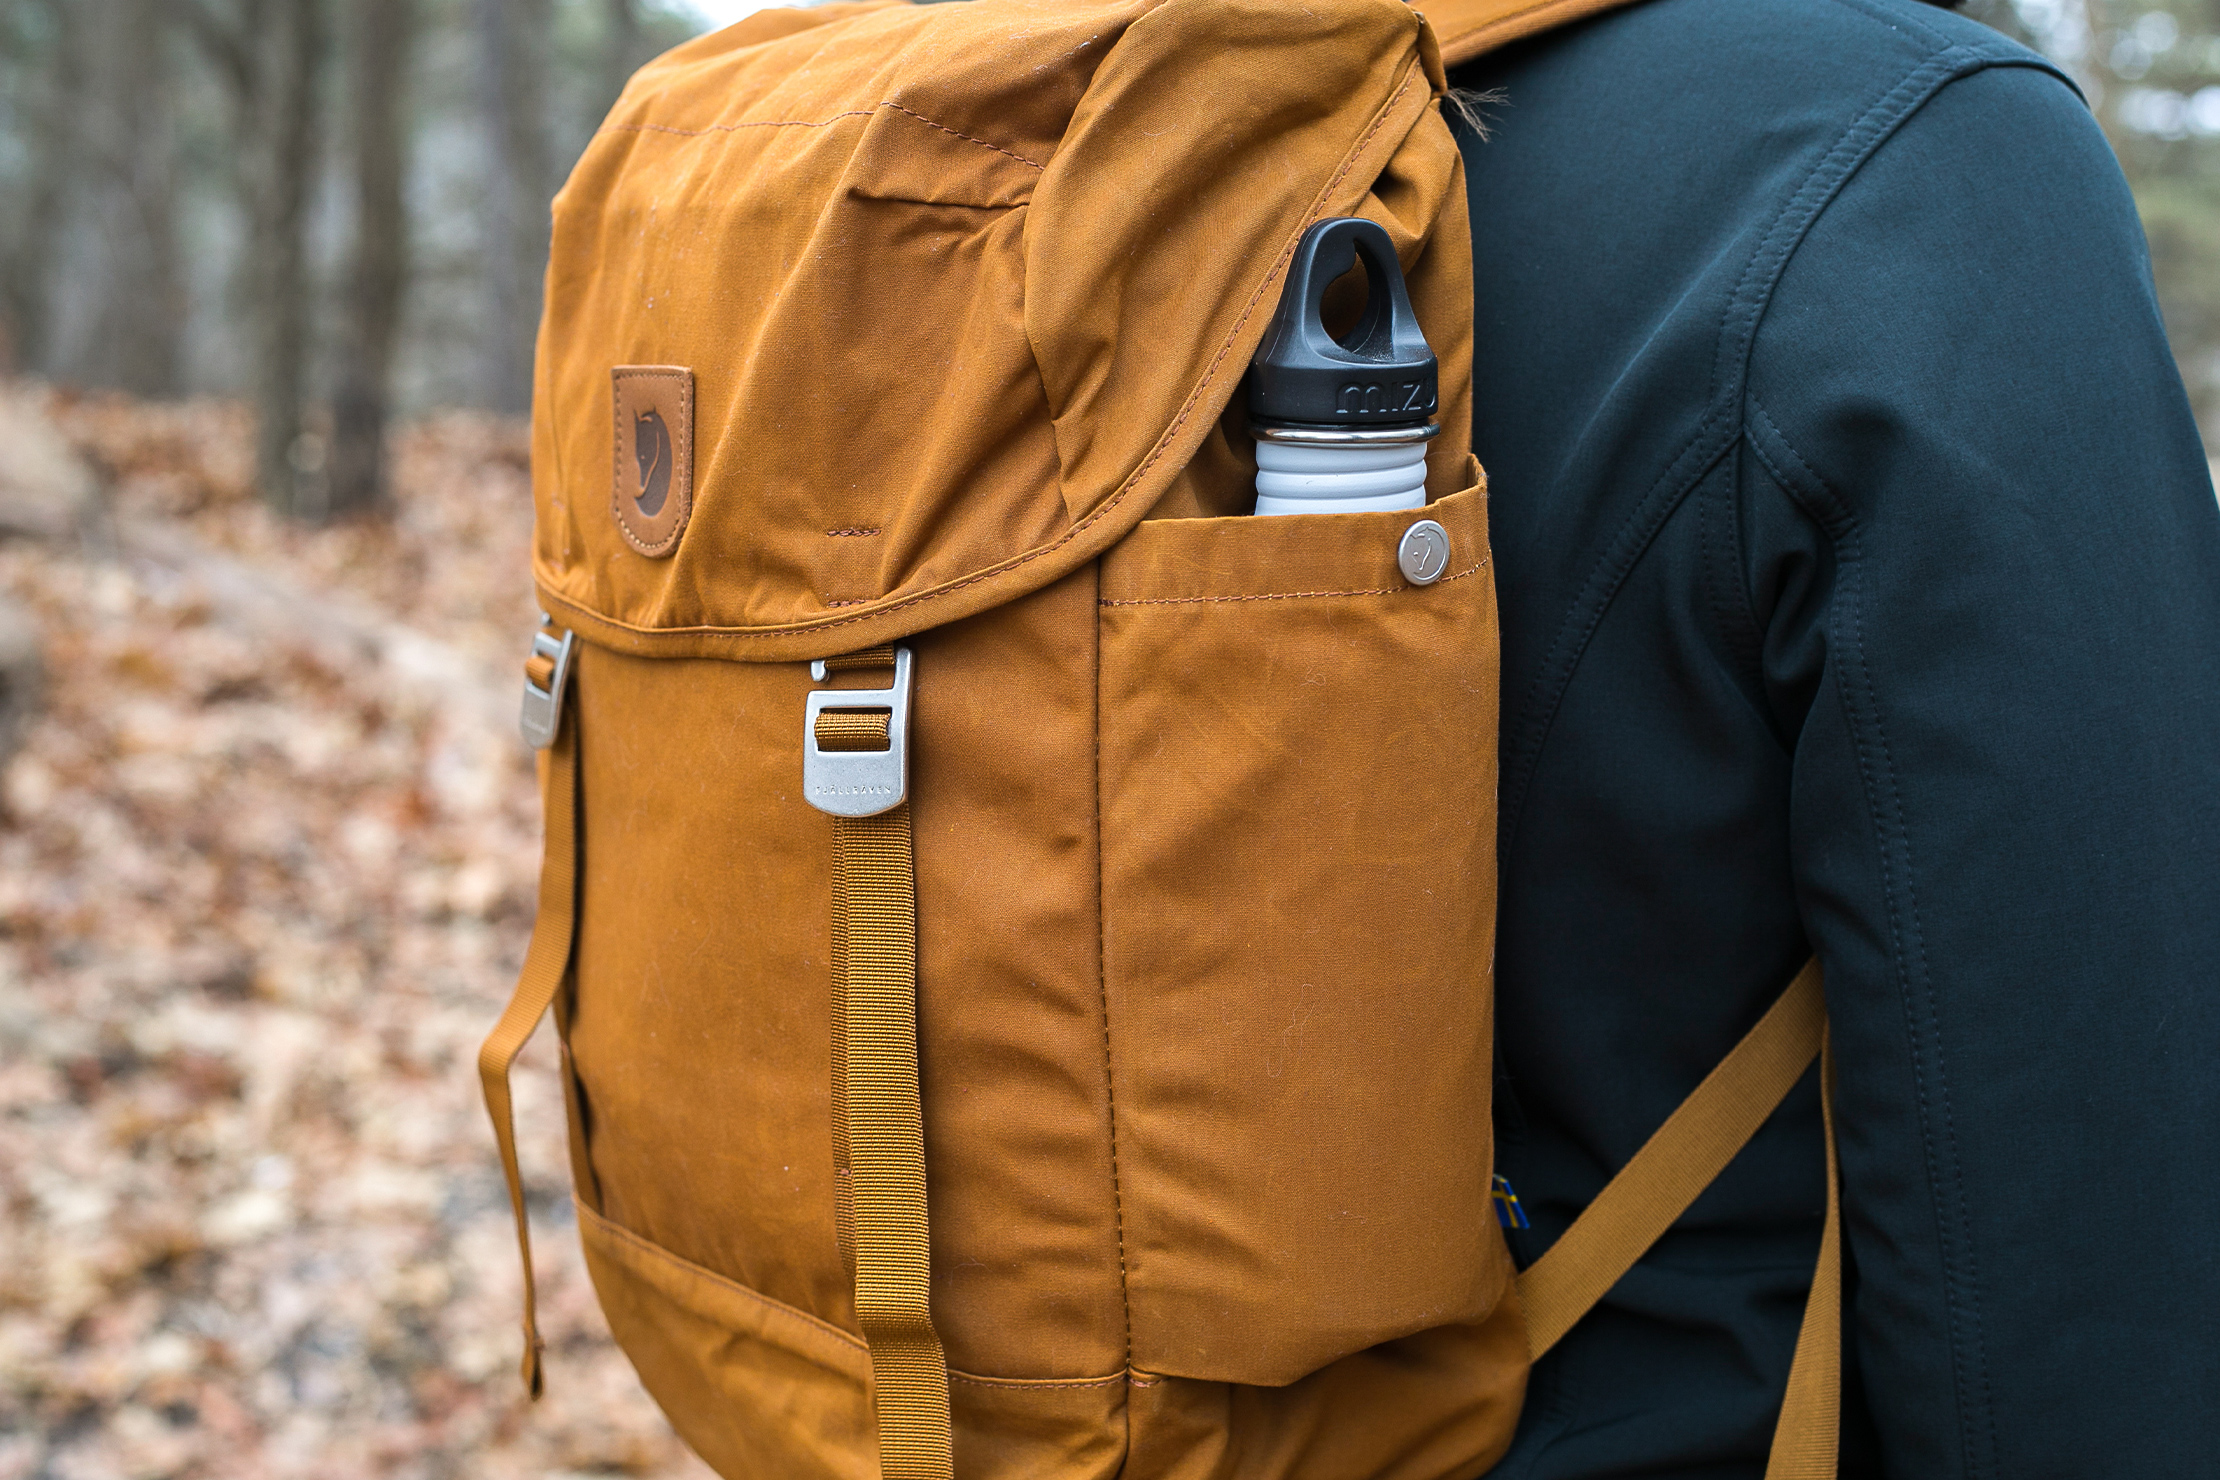 Fjallraven Greenland Top Backpack | Backpack Side View With Water Bottle